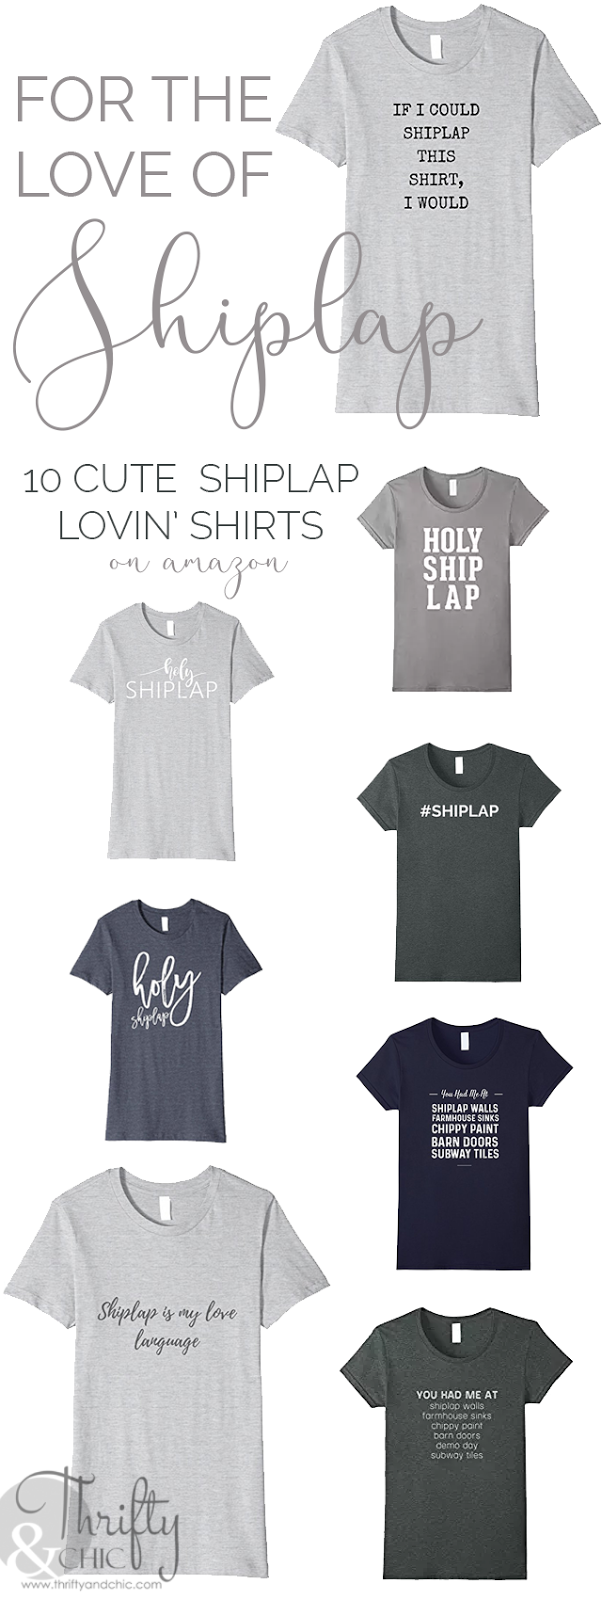 Shiplap shirts or farmhouse themed shirts for shiplap and farmhouse lovers!